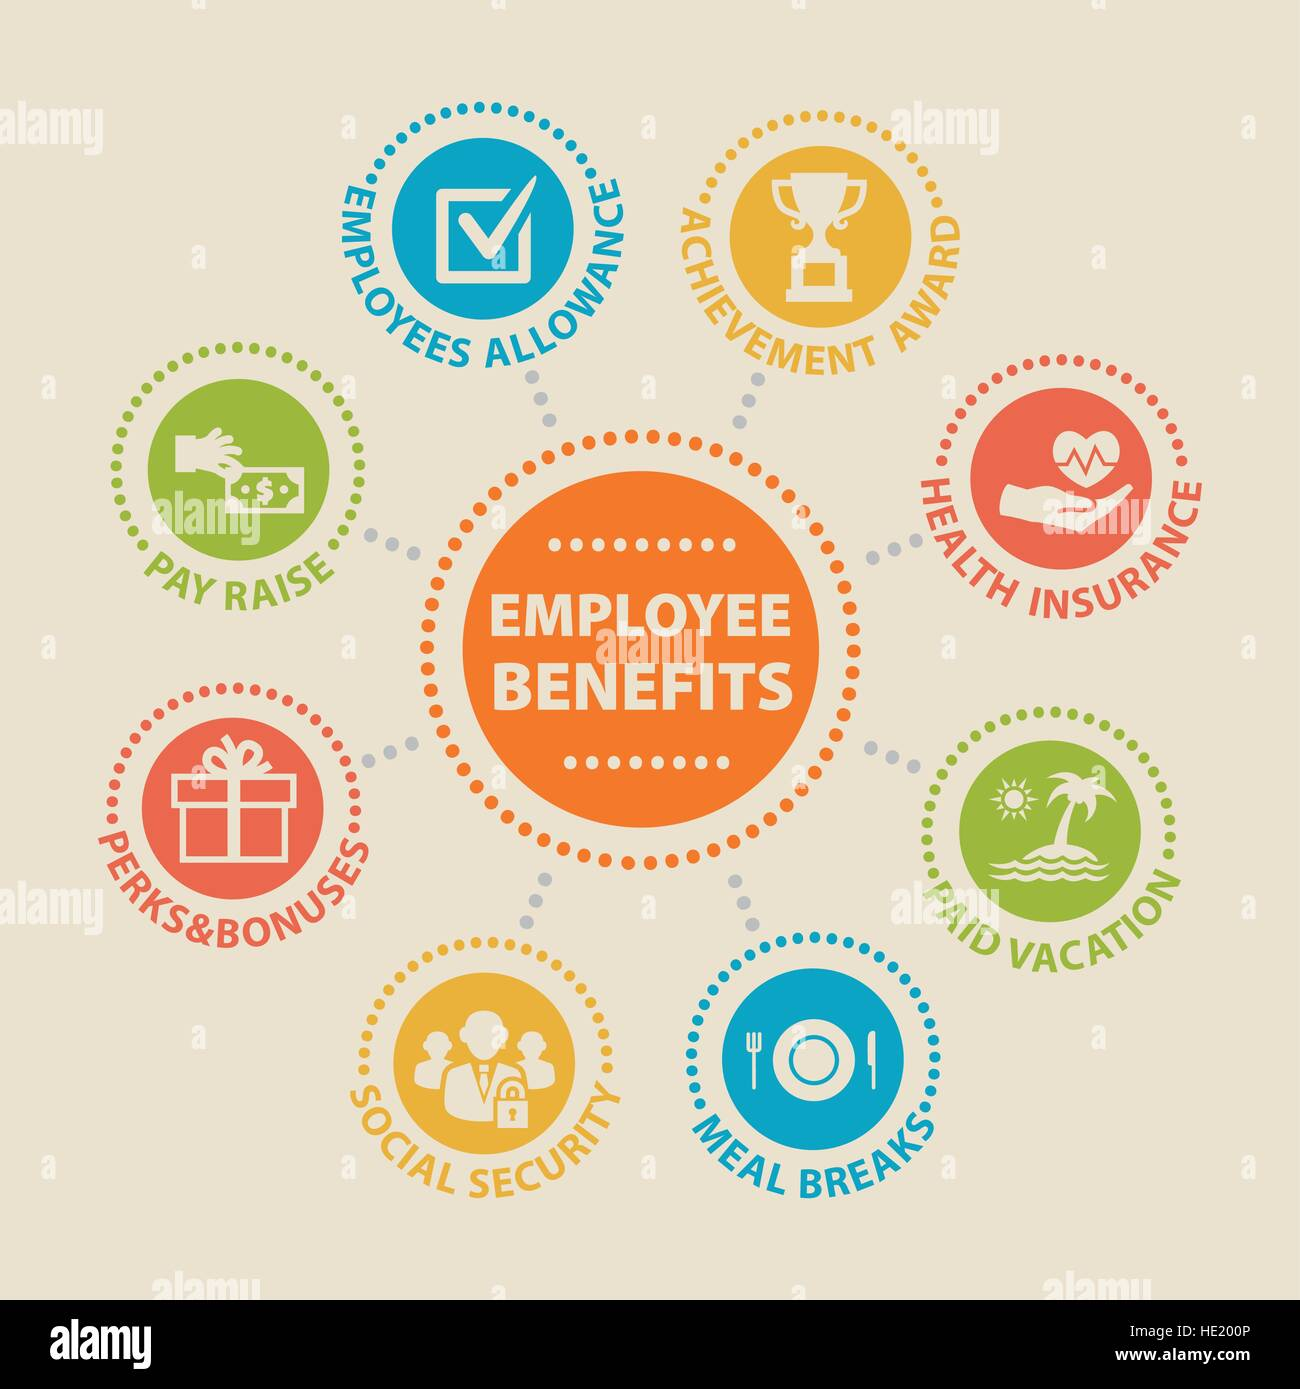 EMPLOYEE BENEFITS Concept with icons and signs Stock Vector